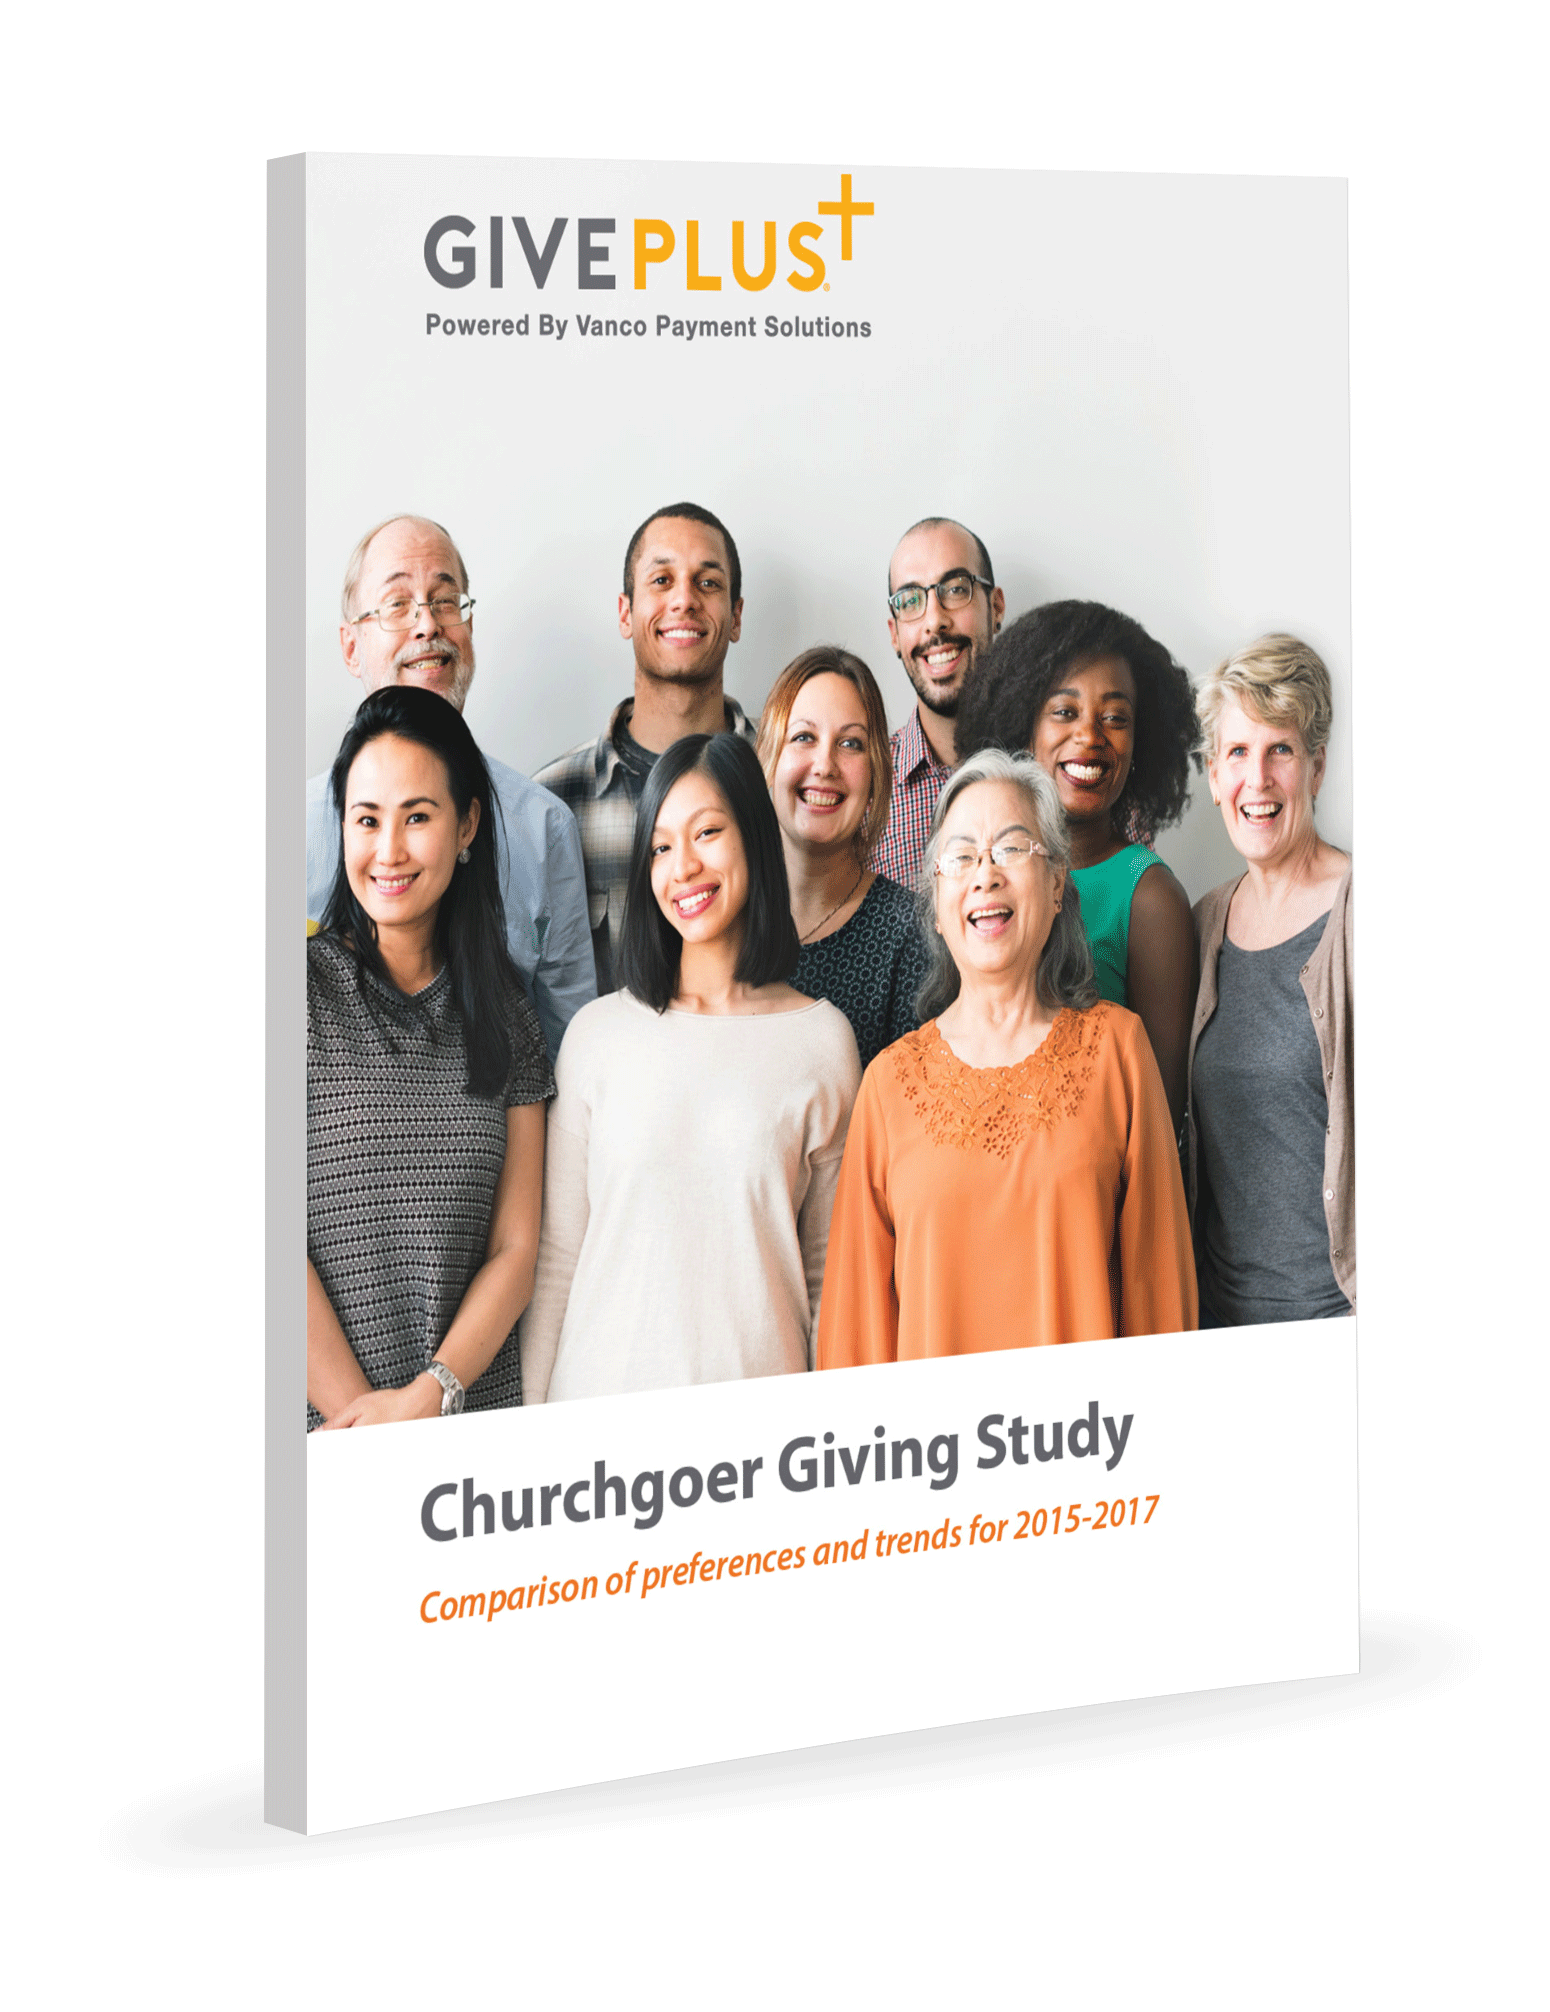 Churchgoer Giving Study Findings Report_2015-2017